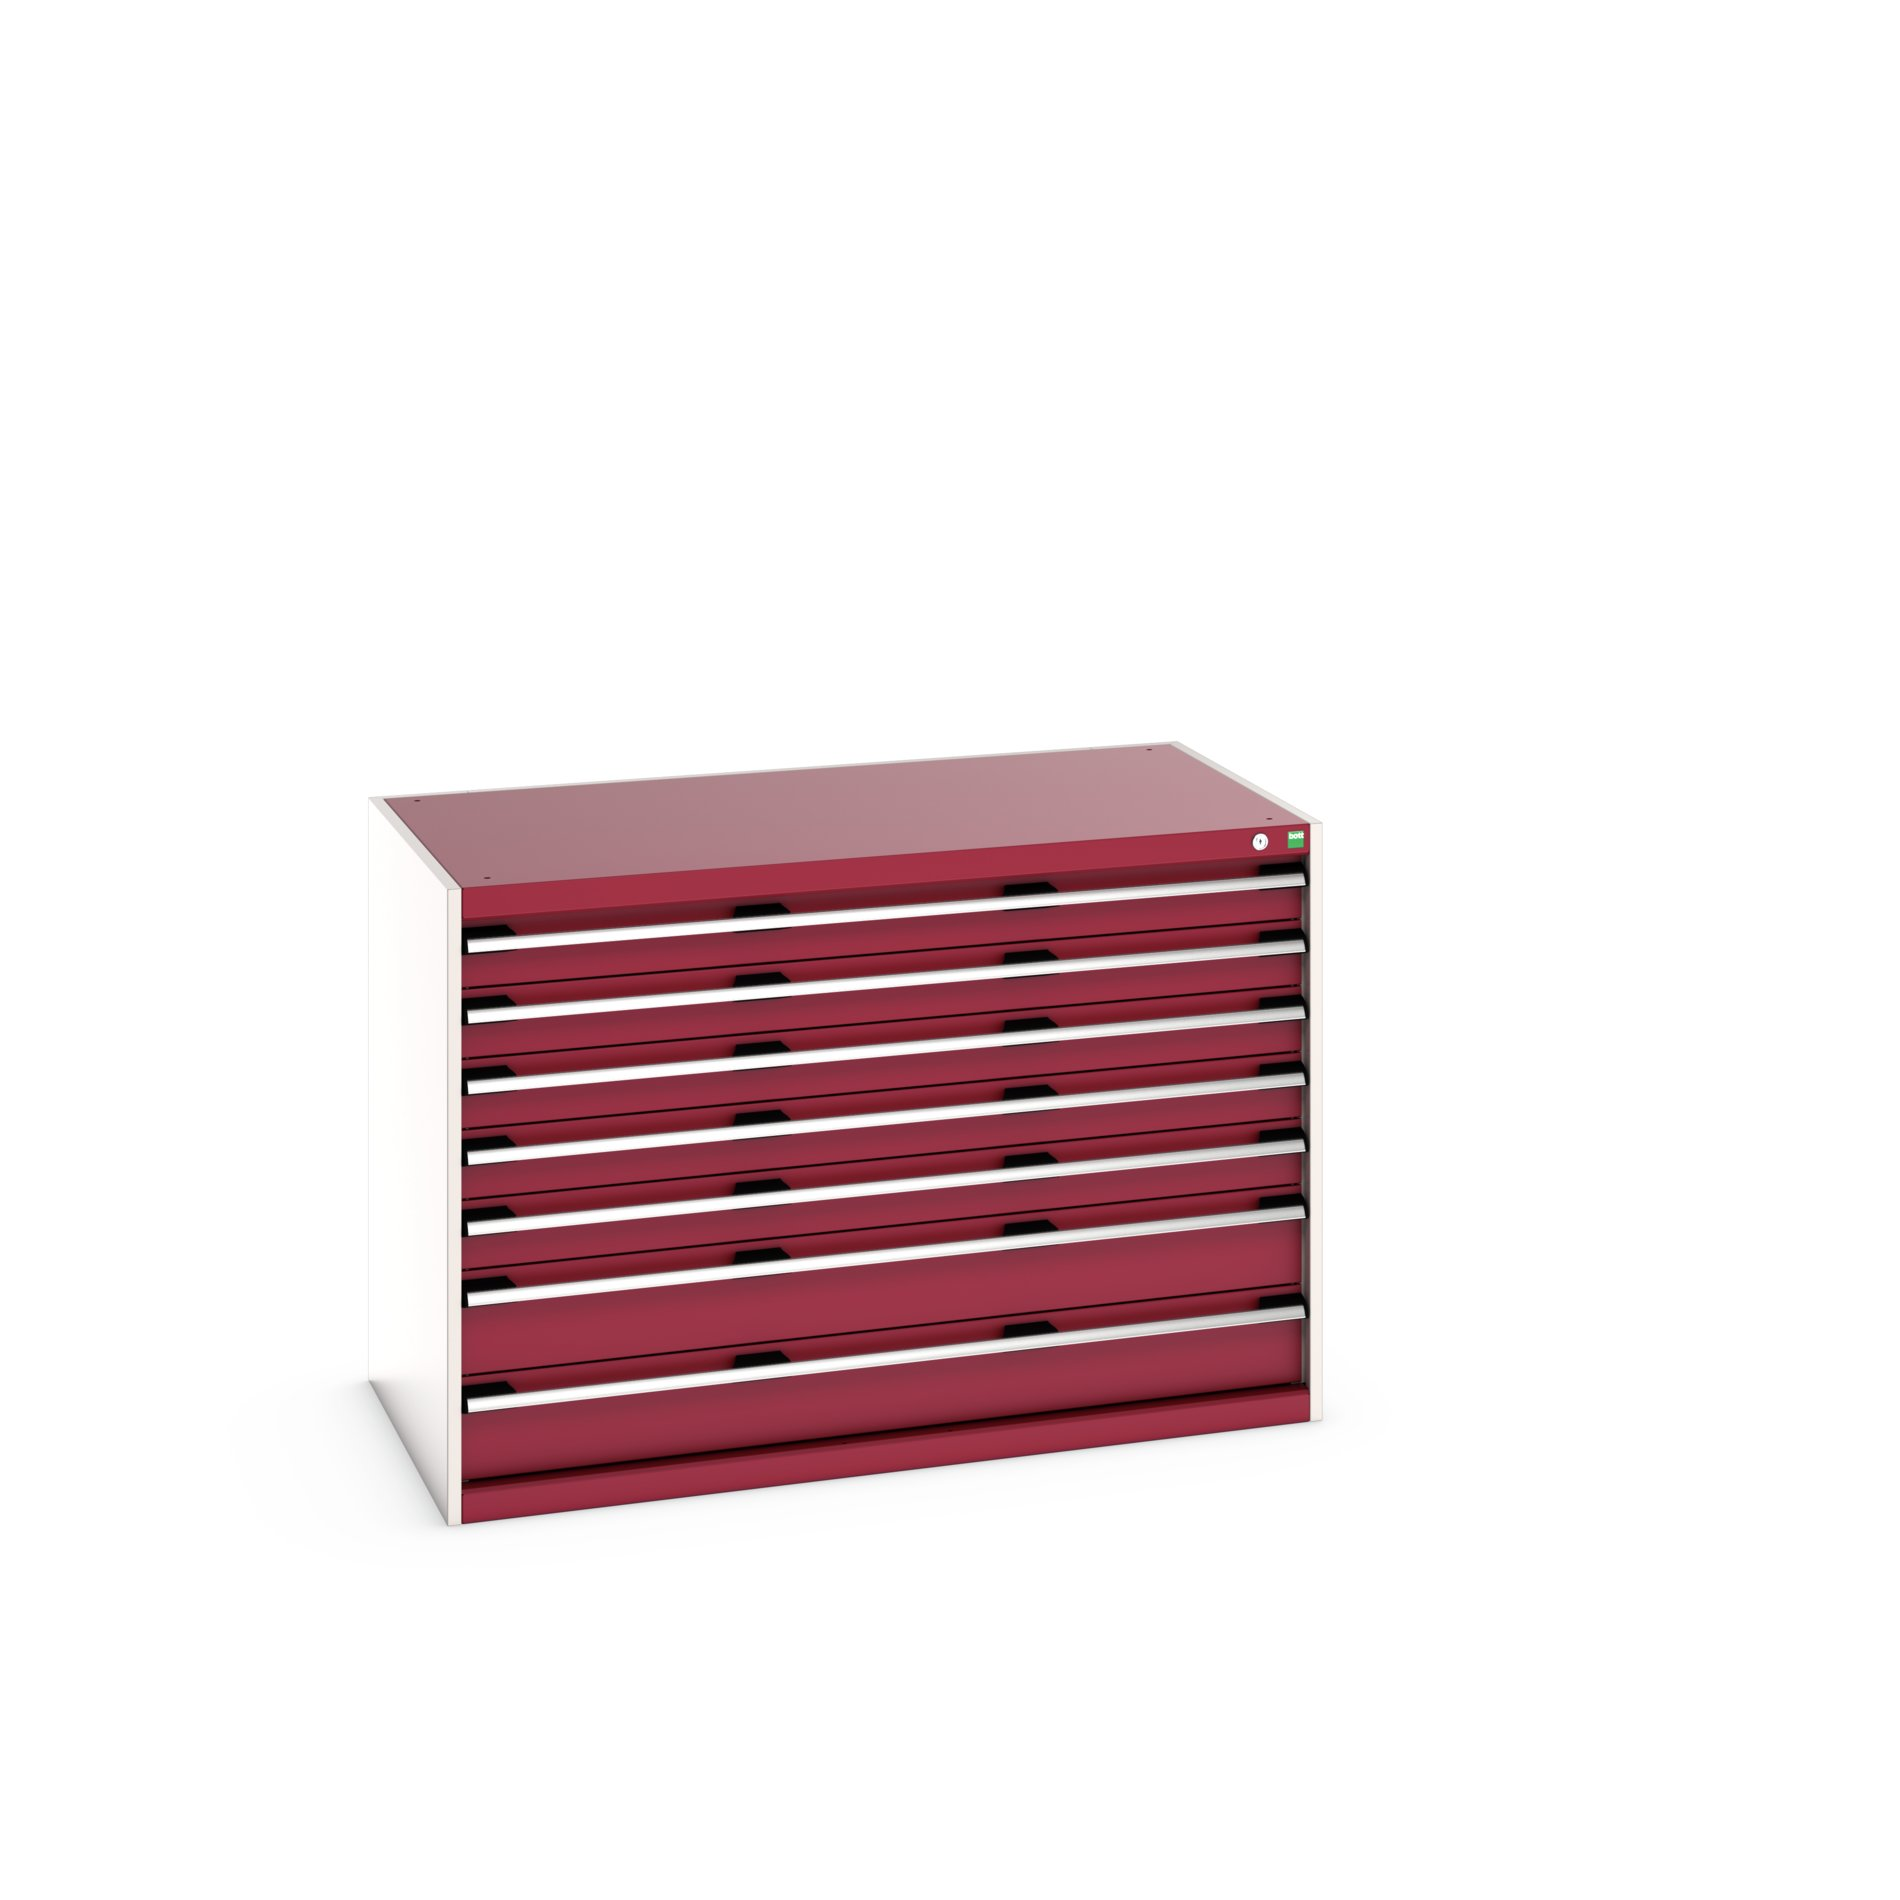 Bott Cubio Drawer Cabinet With 7 Drawers